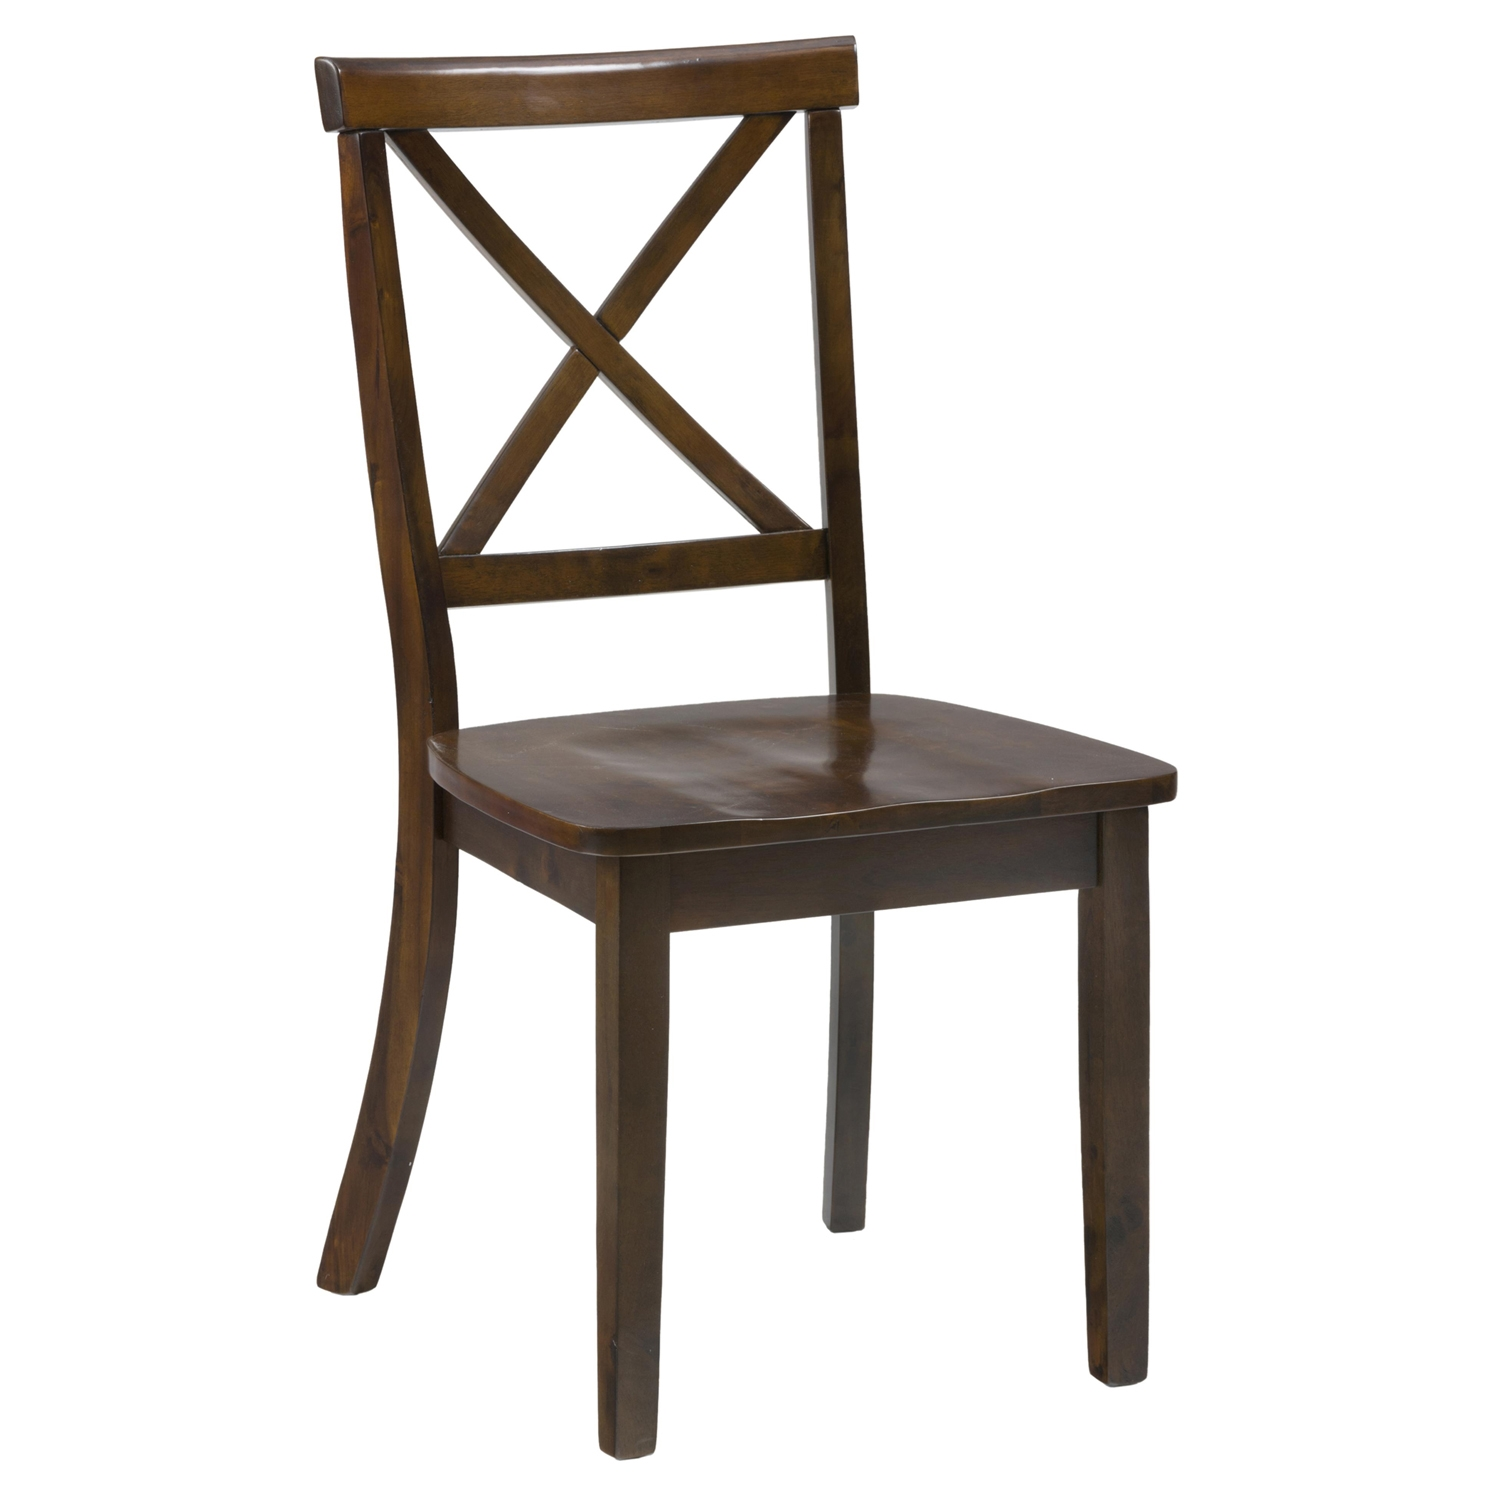 Richmond X Back Dining Chair - Cherry - JOFR-342-915KD